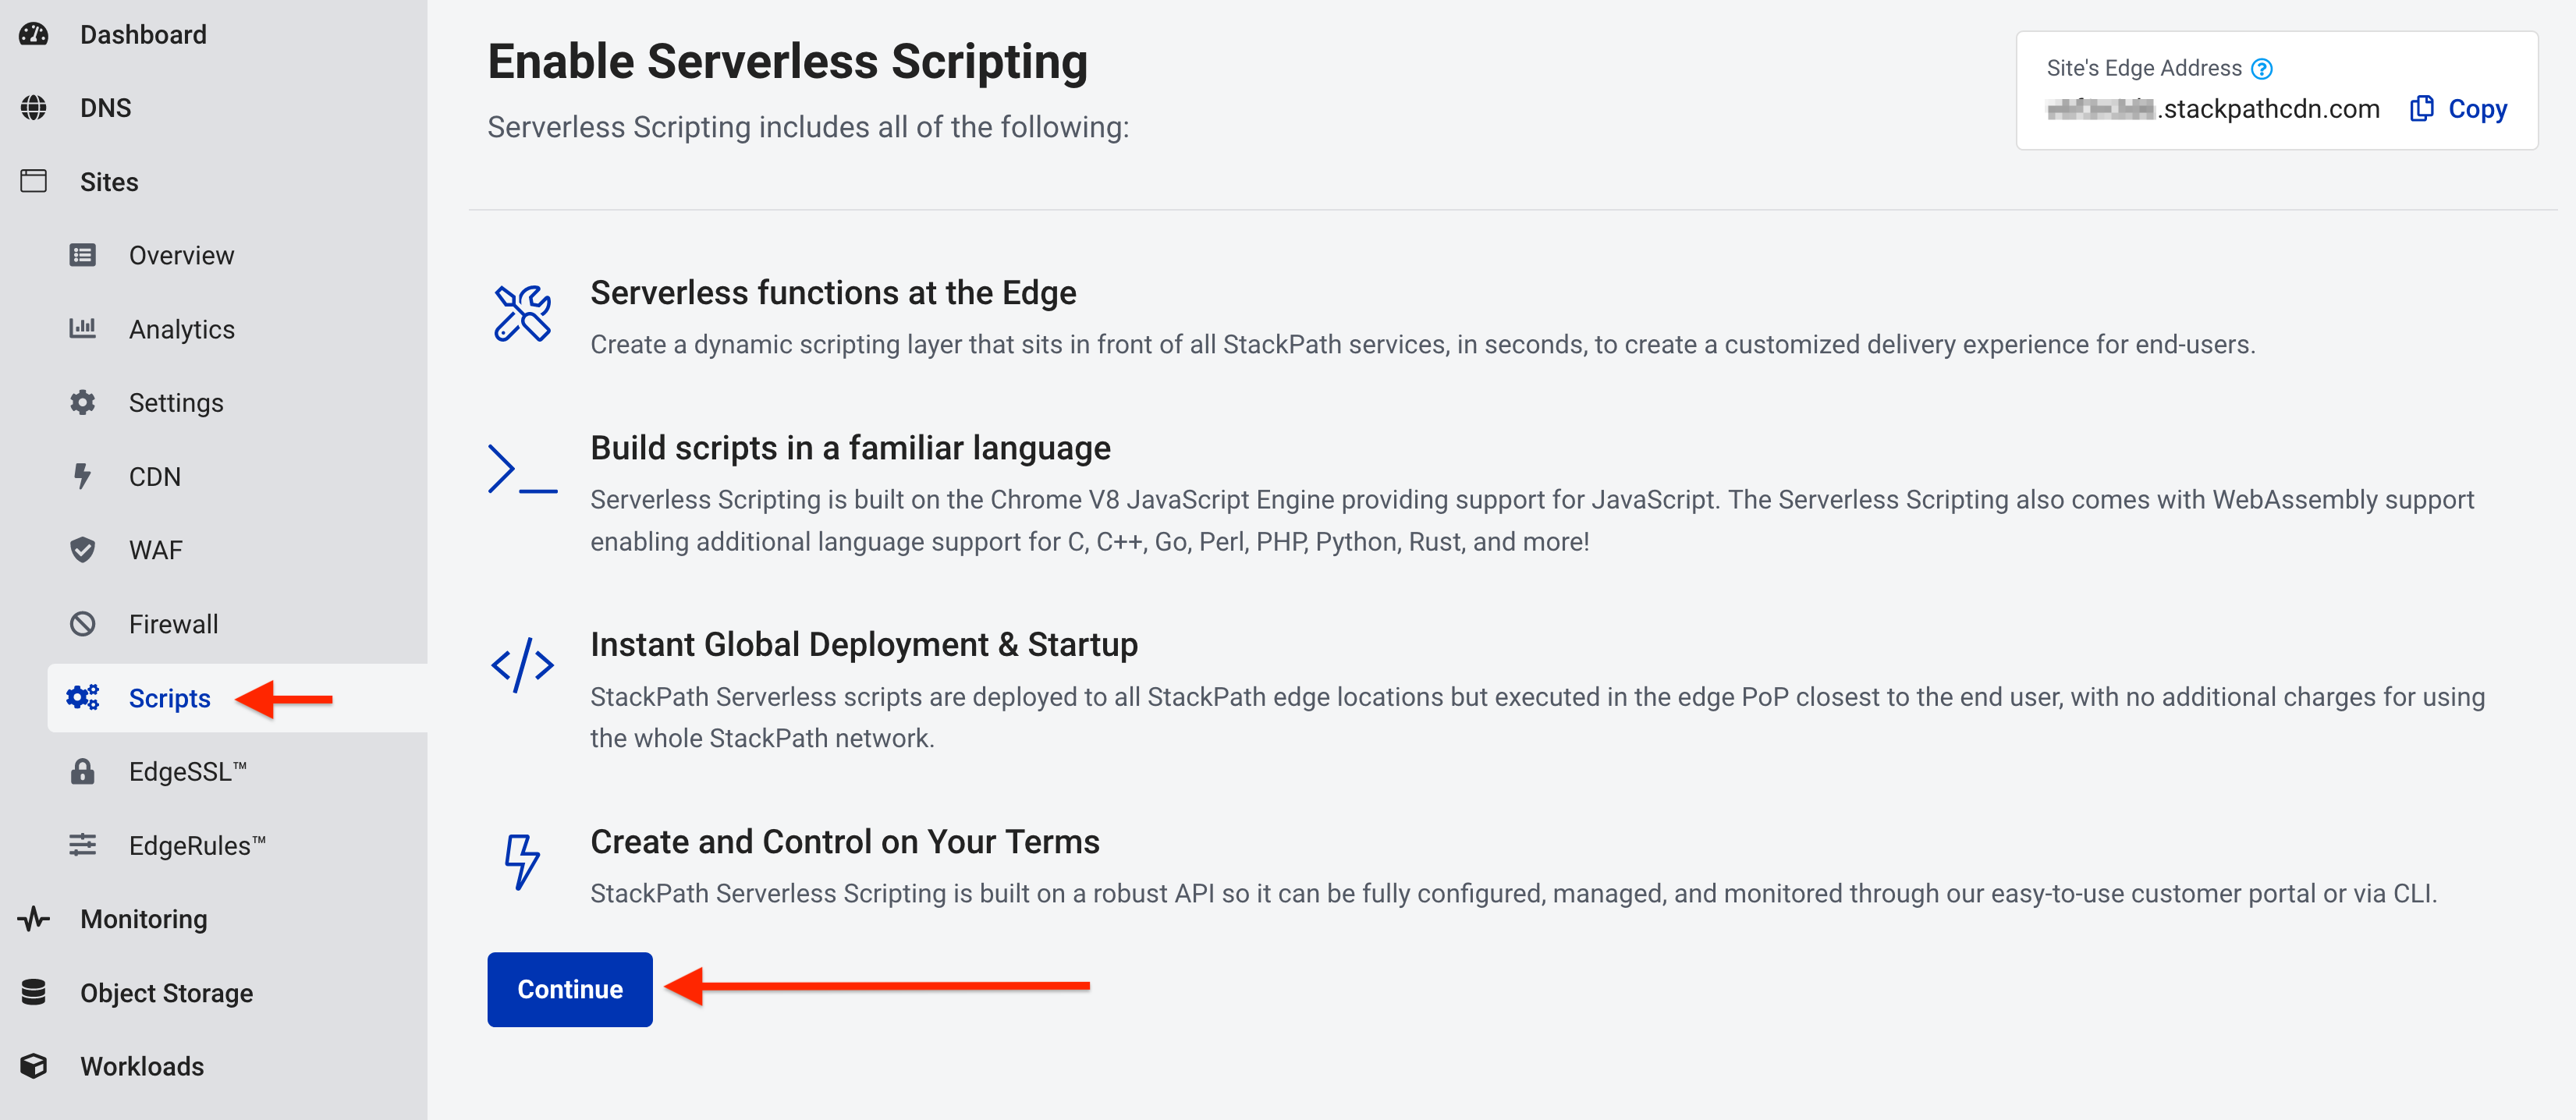 StackPath-Enable_Serverless_Scripting.png